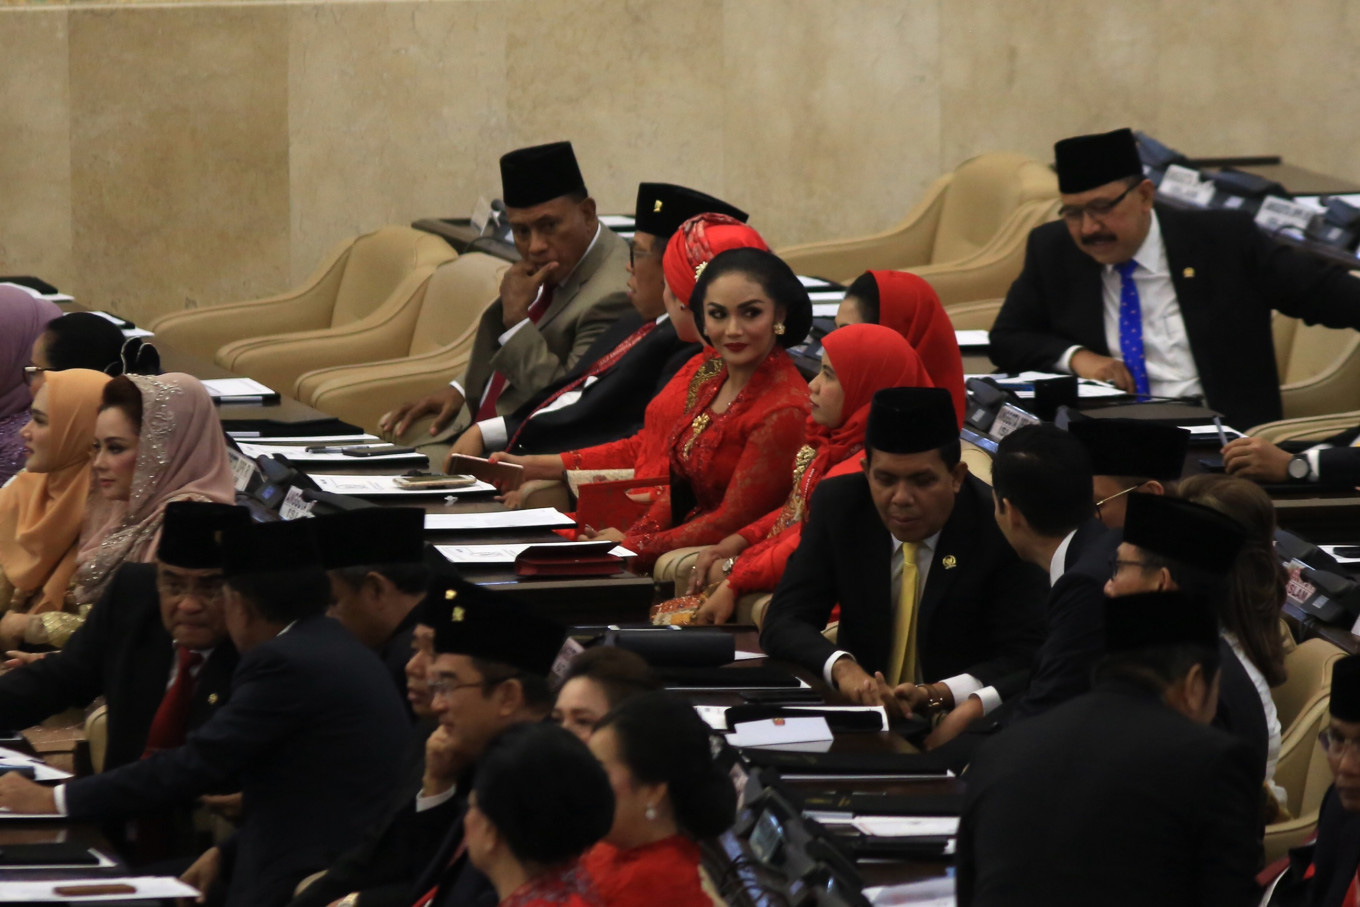 More women in Indonesian politics has not reduced graft